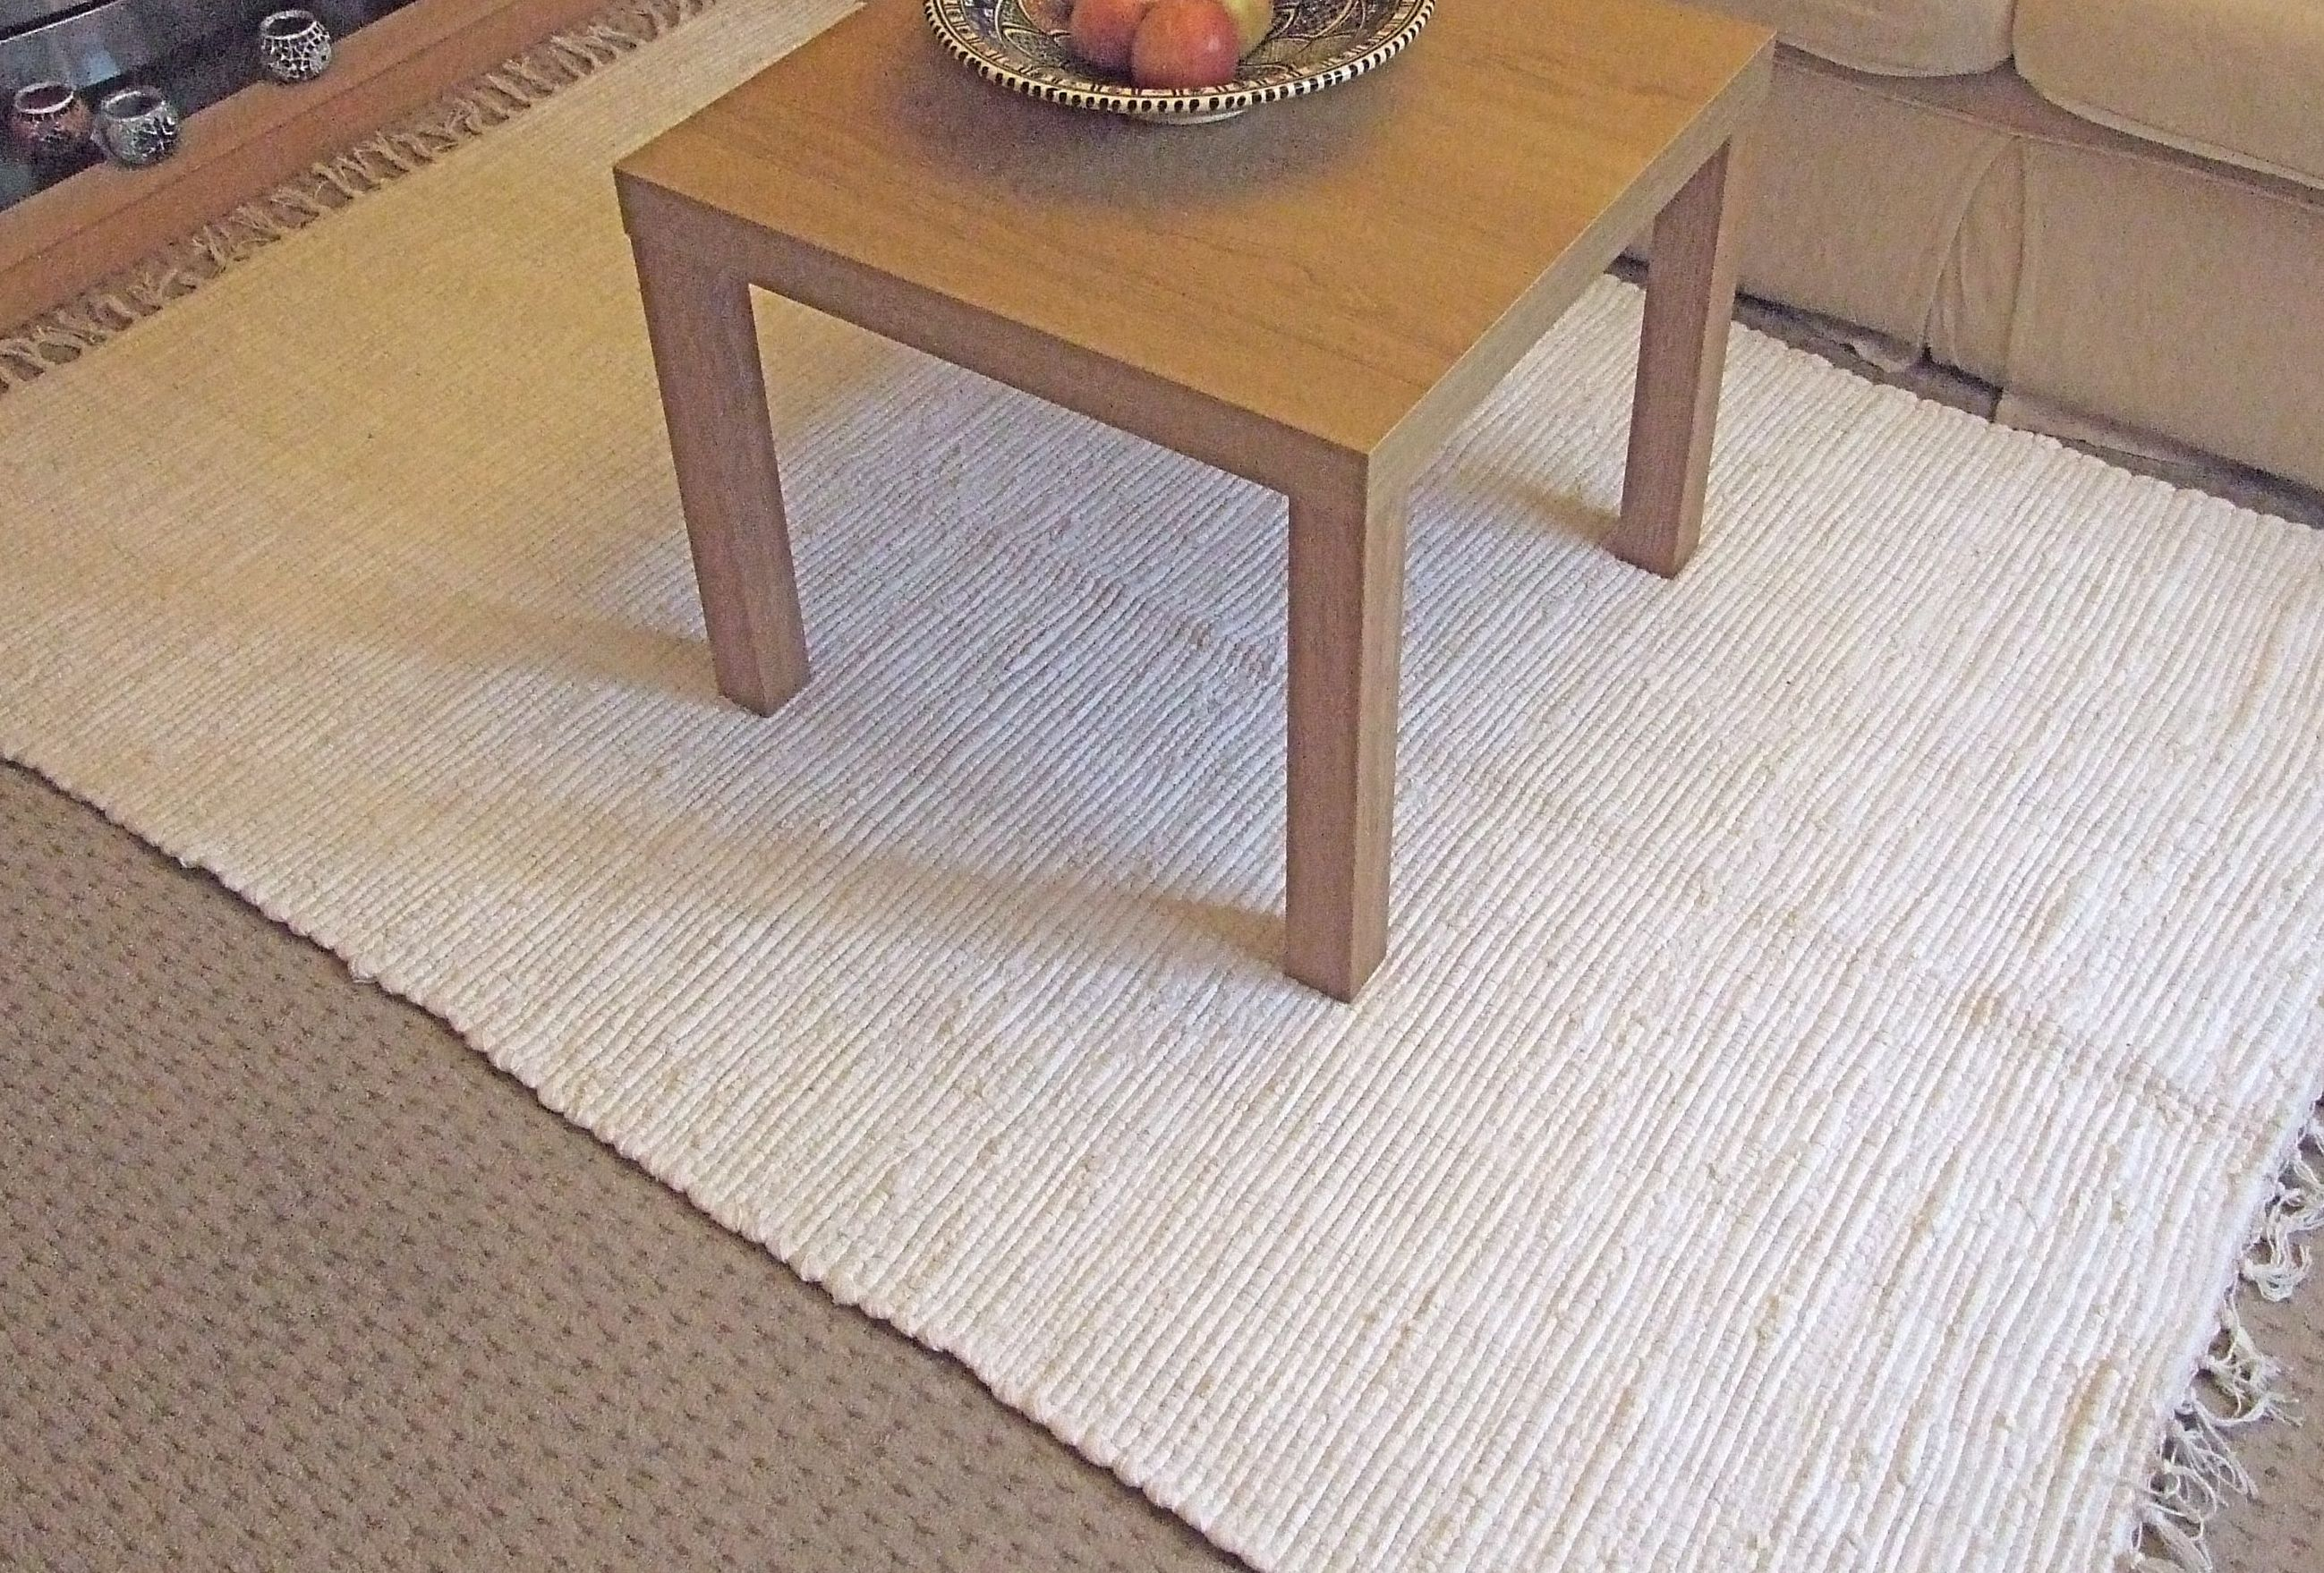 For The Neutral Understated Look Recycled Cotton Rag Rugs Overdyed In Lovely Cream 3 Sizes From Www Aswedishhome Co Uk